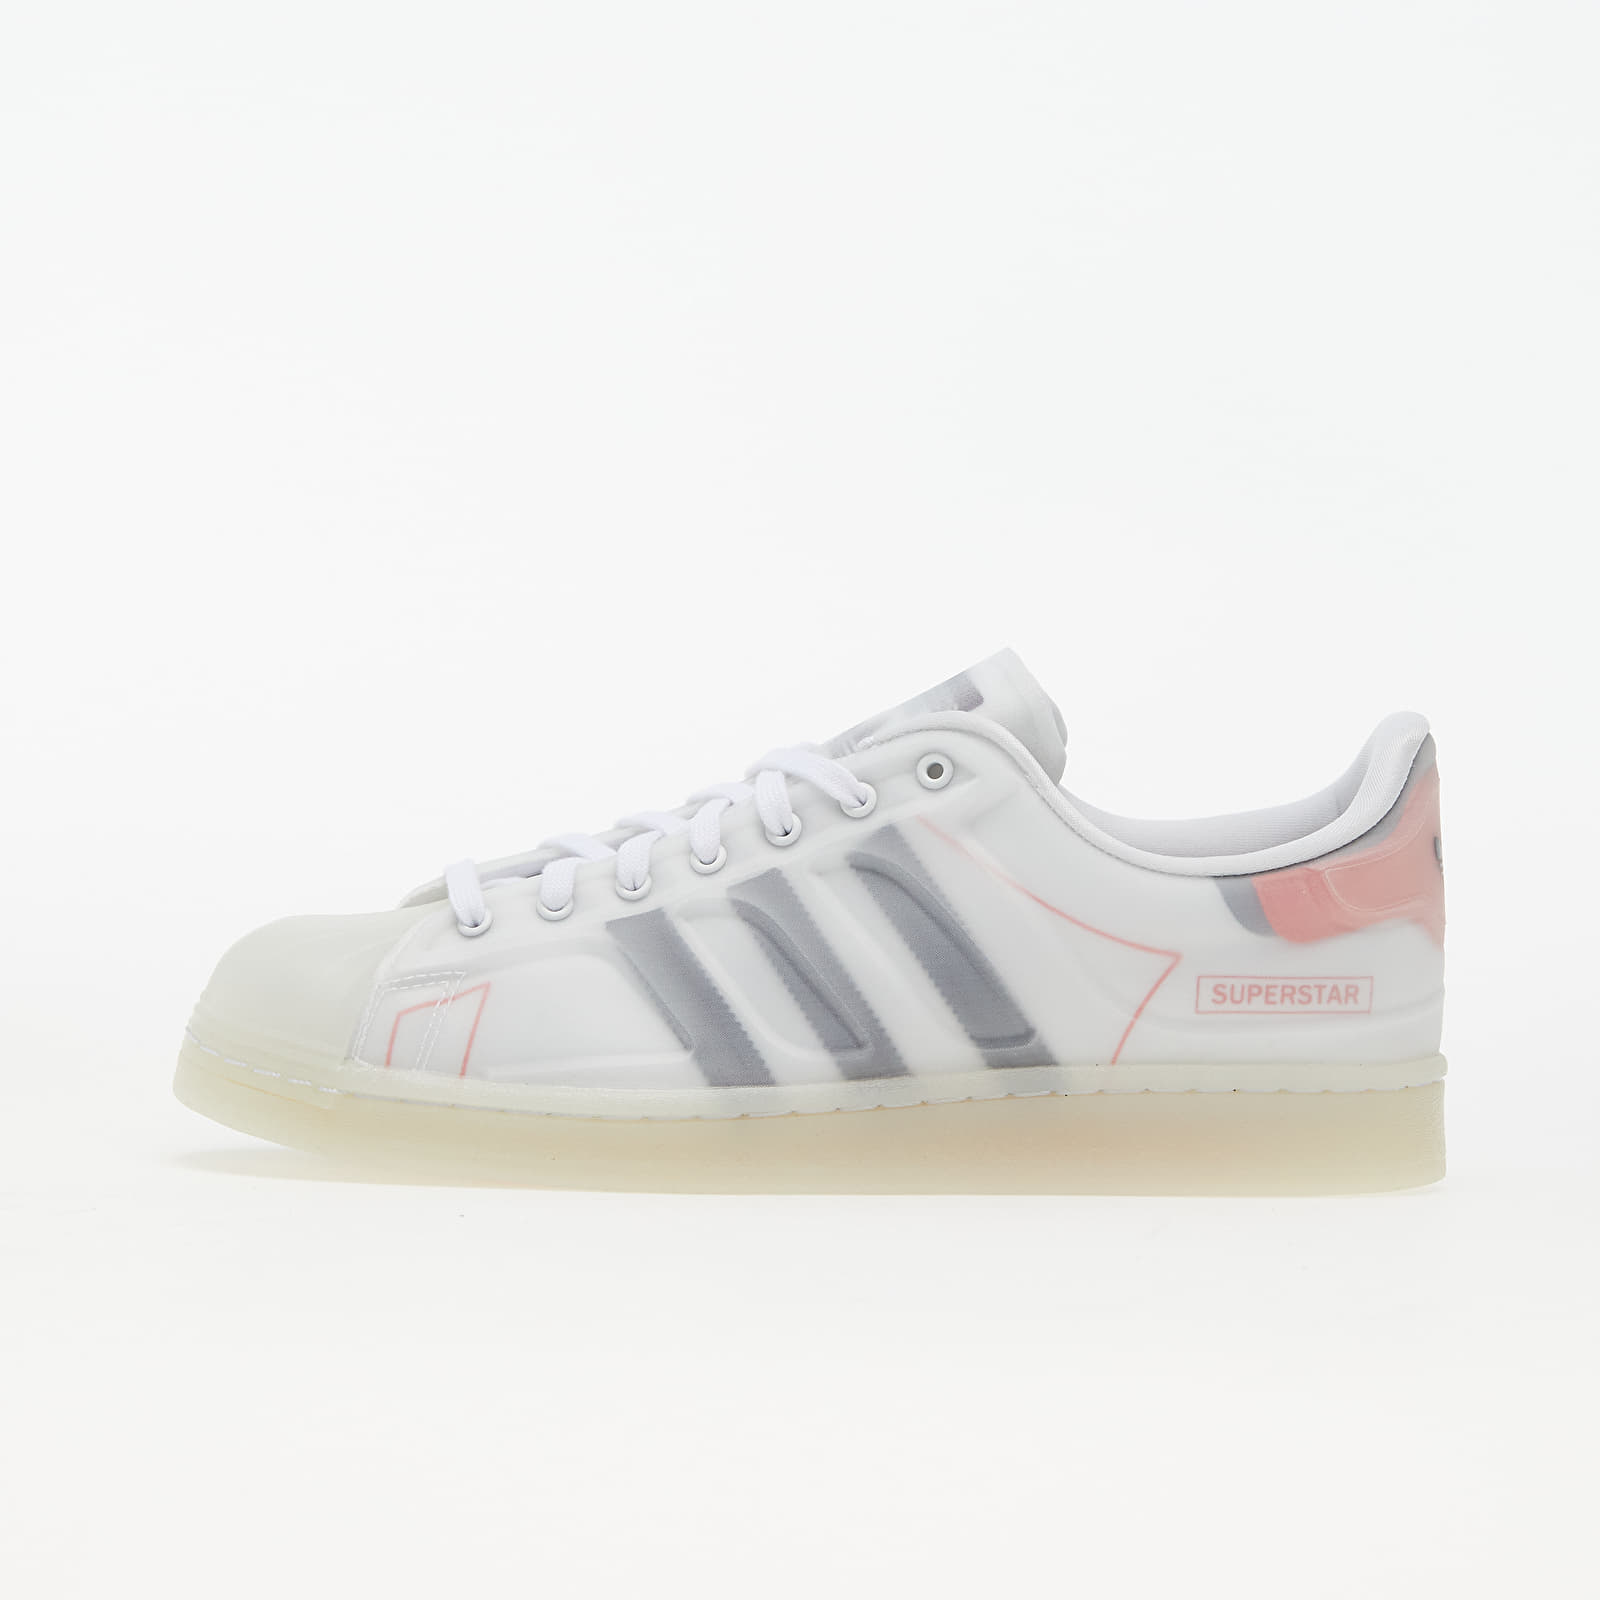 adidas Superstar Futureshell Ftw White/ Core Black/ Semi Solar Red EUR 43 1/3